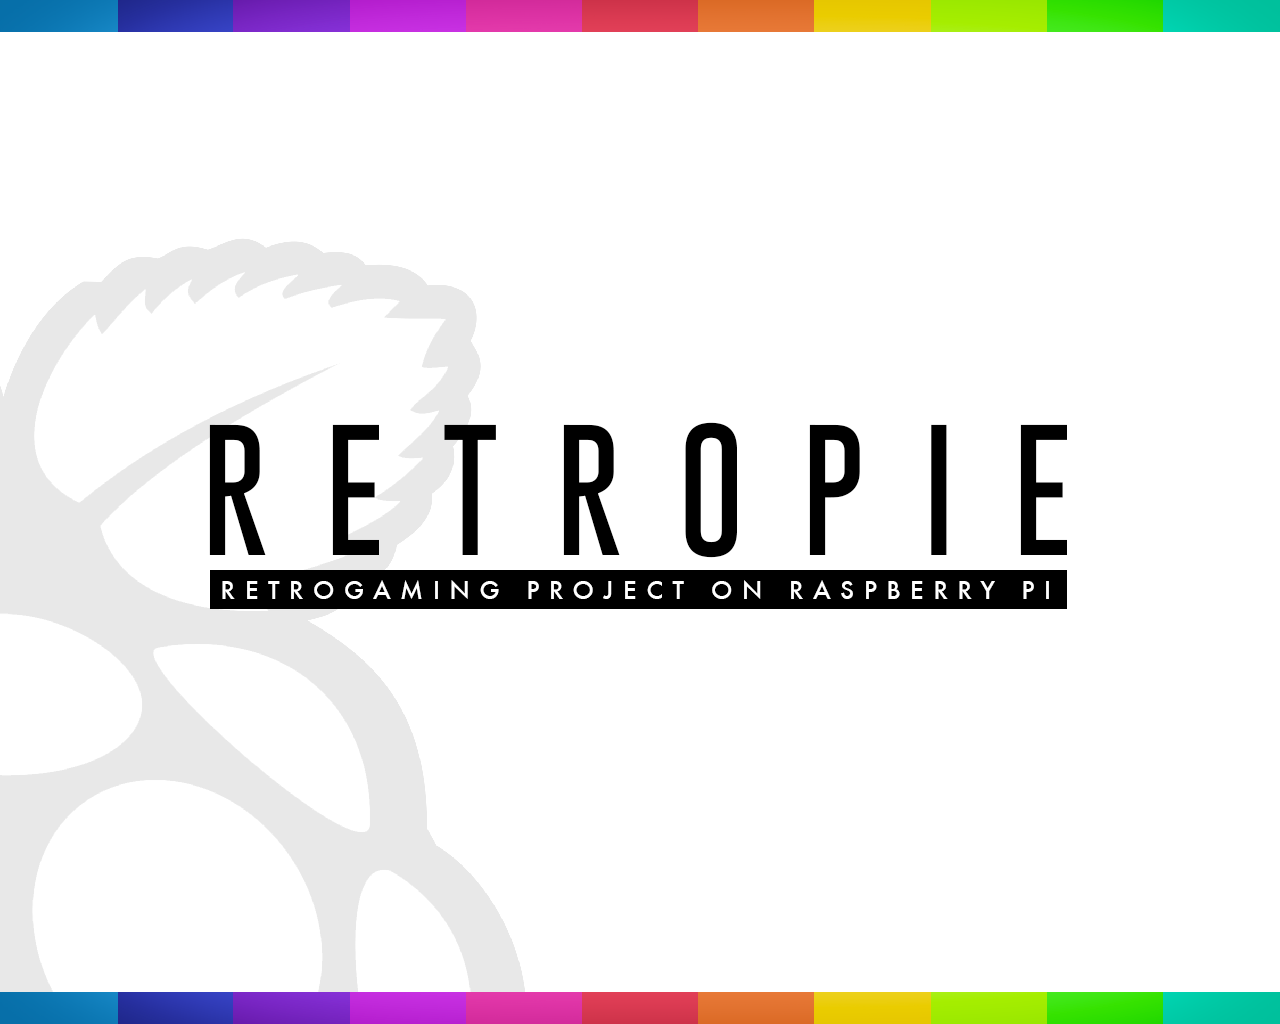 RetroPie Project Splashscreen